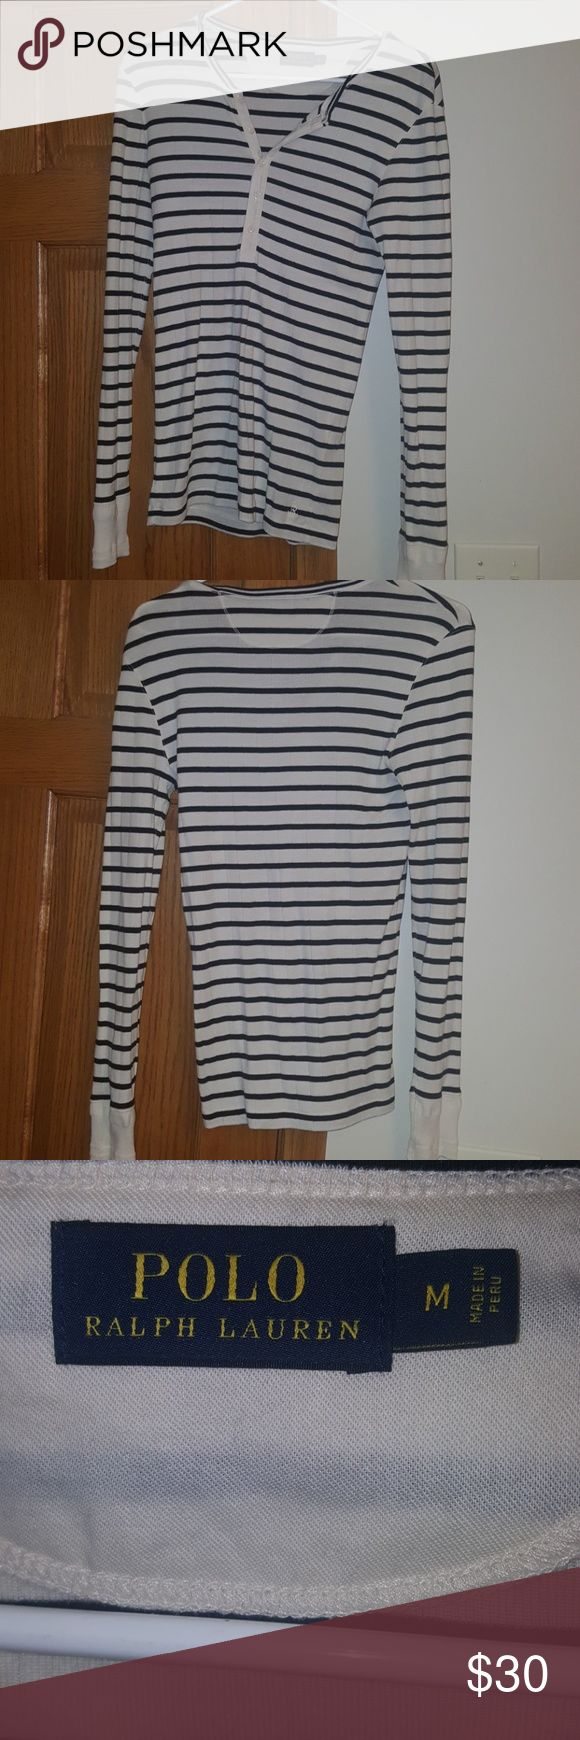 Polo - Ralph Lauren Nautical Striped Long Sleeve. EUC, worn 1x. Comfy Polo - Ralph Lauren Nautical Striped long sleeve shirt.  Button up to mid chest, size medium. Off white and blue stripes. Tops Button Down Shirts